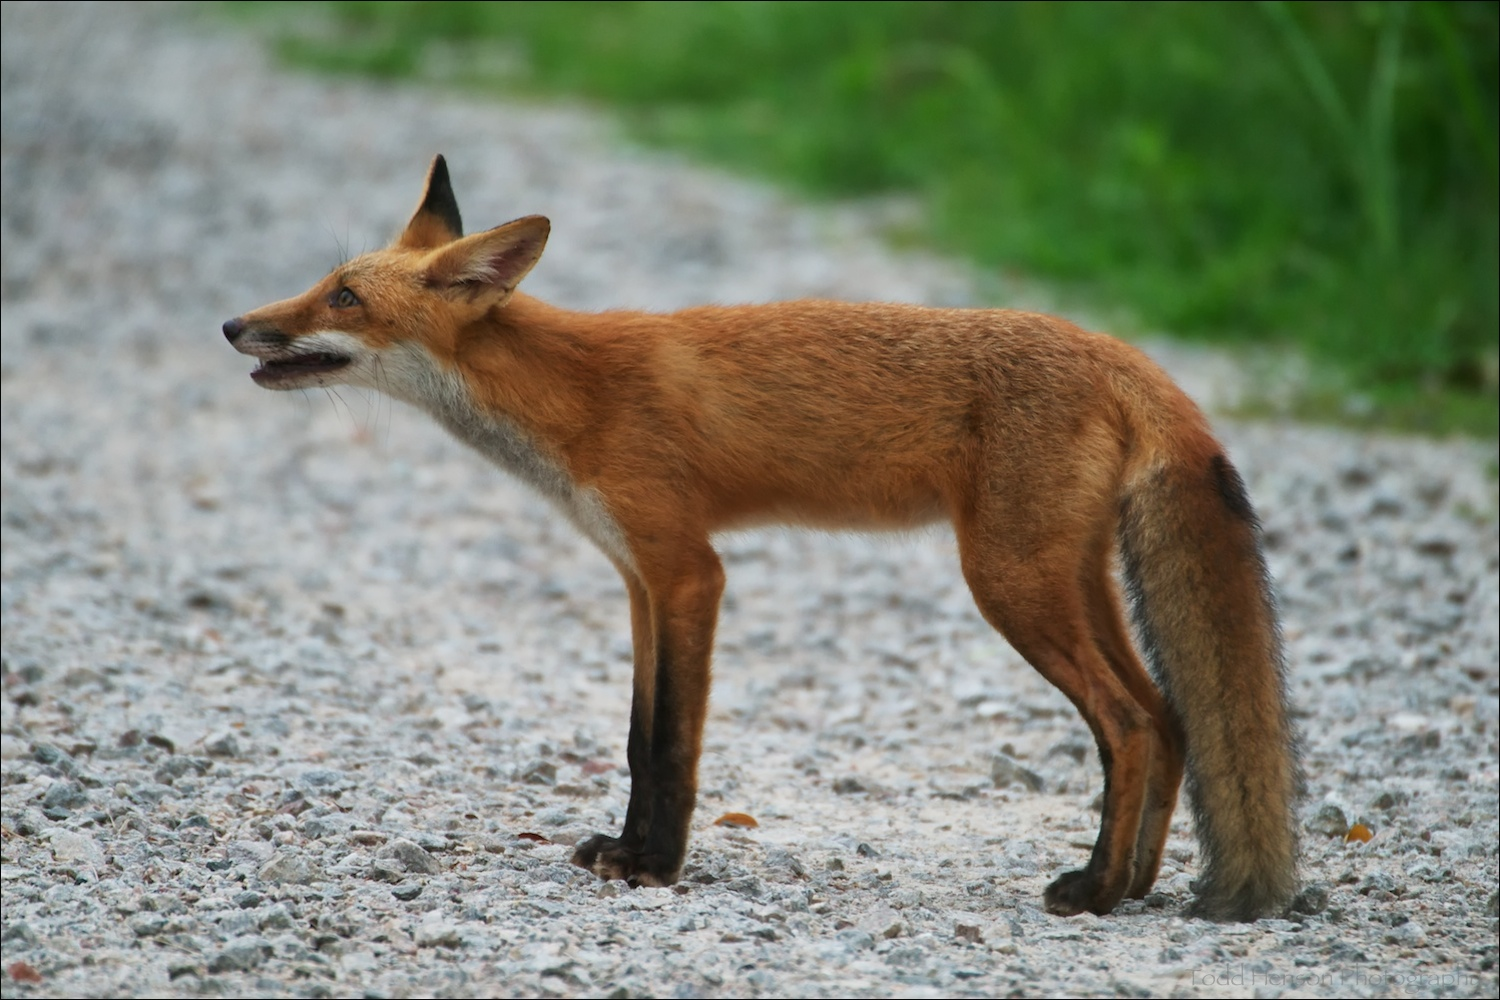 Young red fox pausing on trail perhaps 10-15 feet away